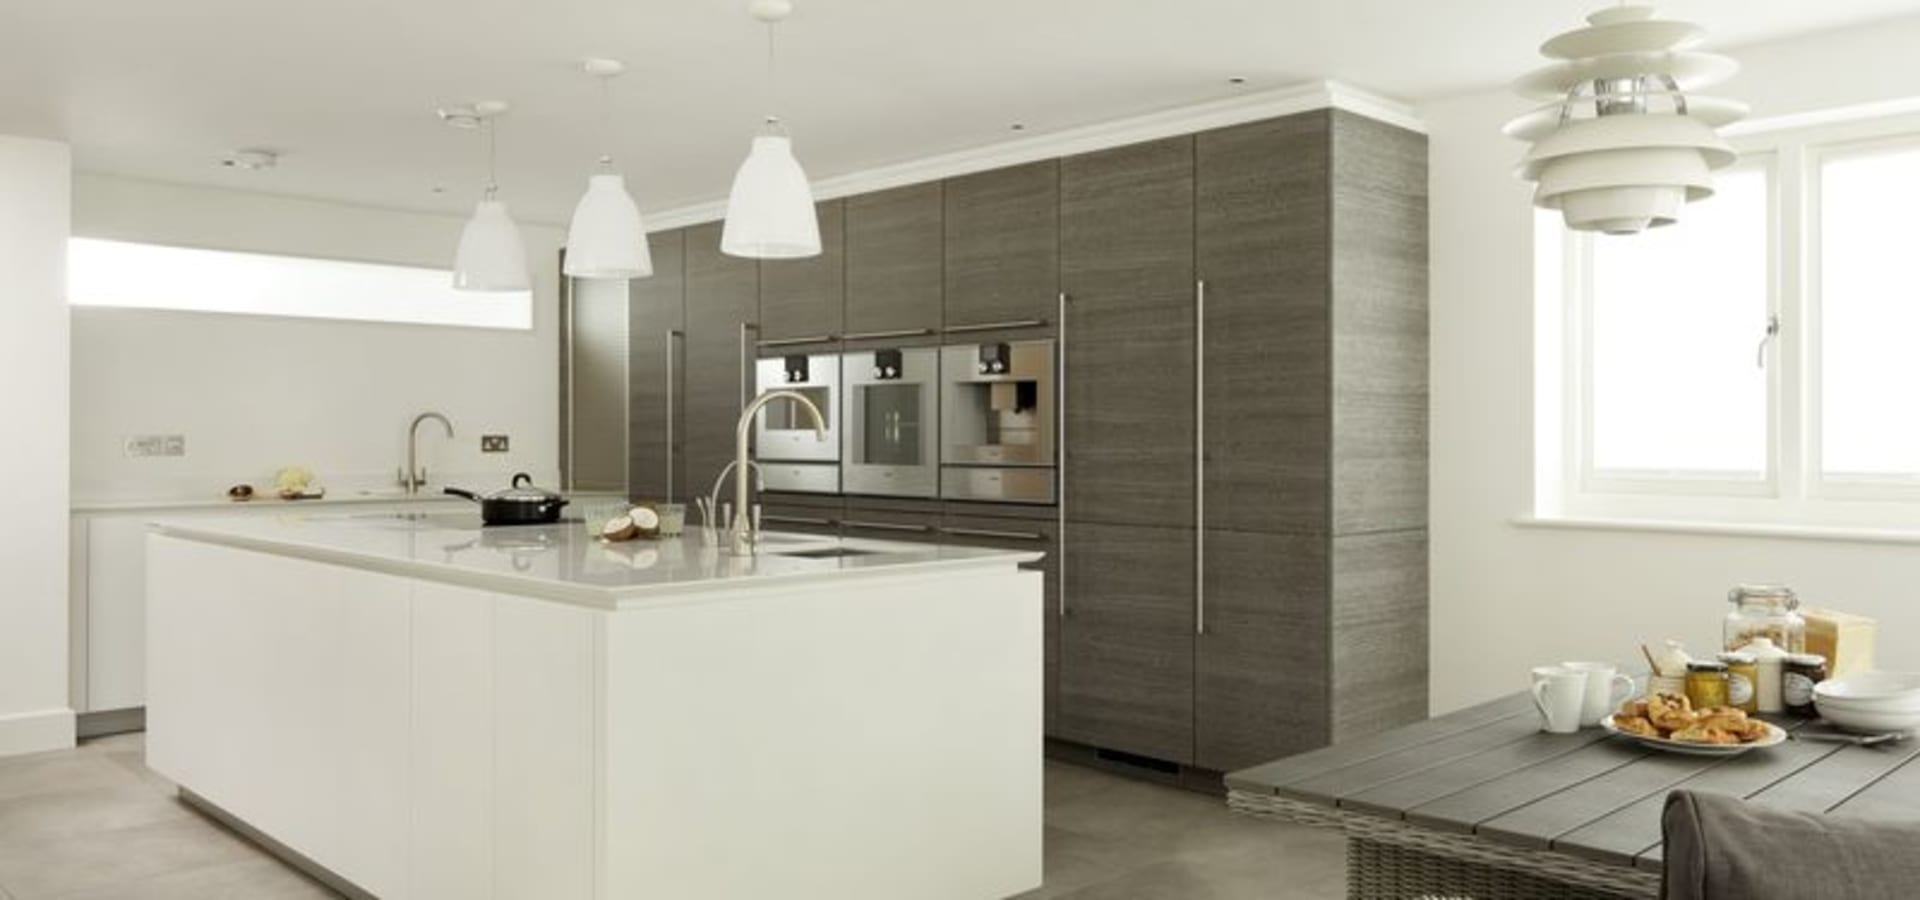 Halcyon Interiors Kitchen Planners In London